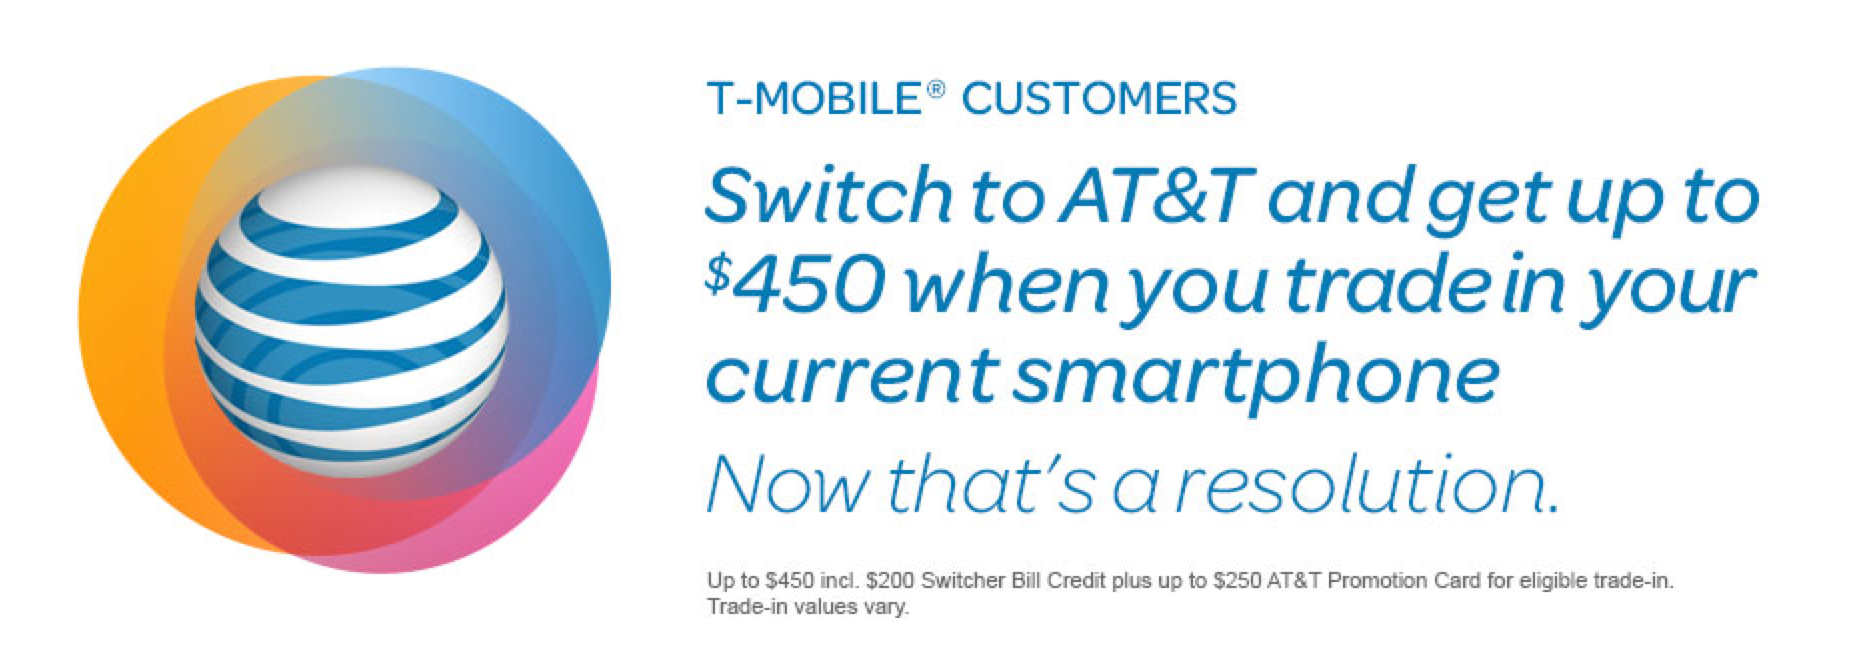 AT&T willing to give T-Mobile